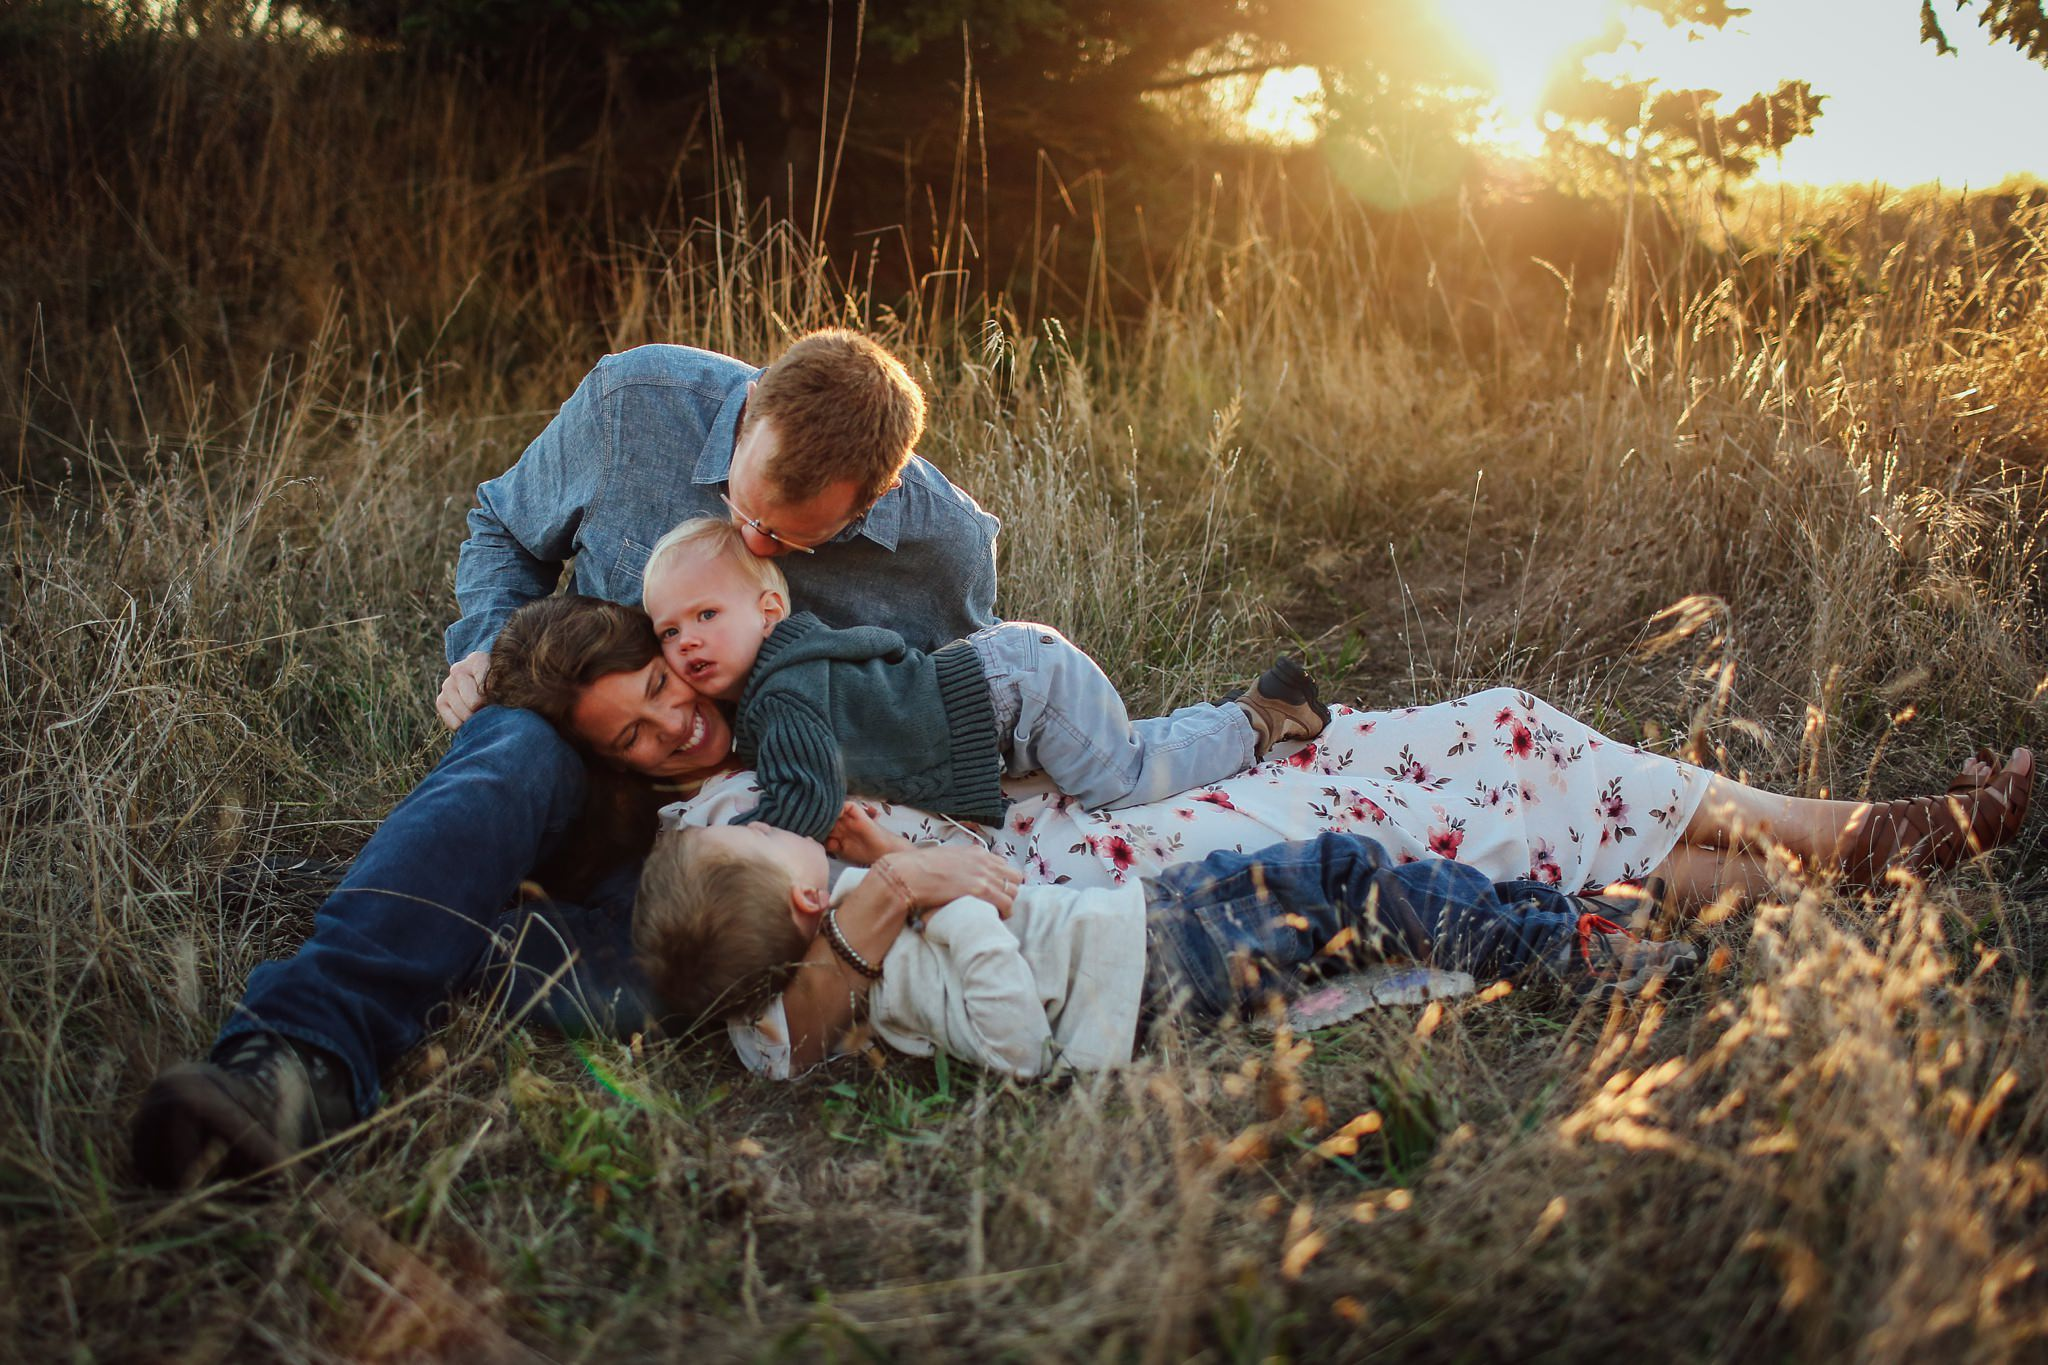 Whidbey-Island-Family-Photographer-Kara-Chappell-Photography_1101.jpg